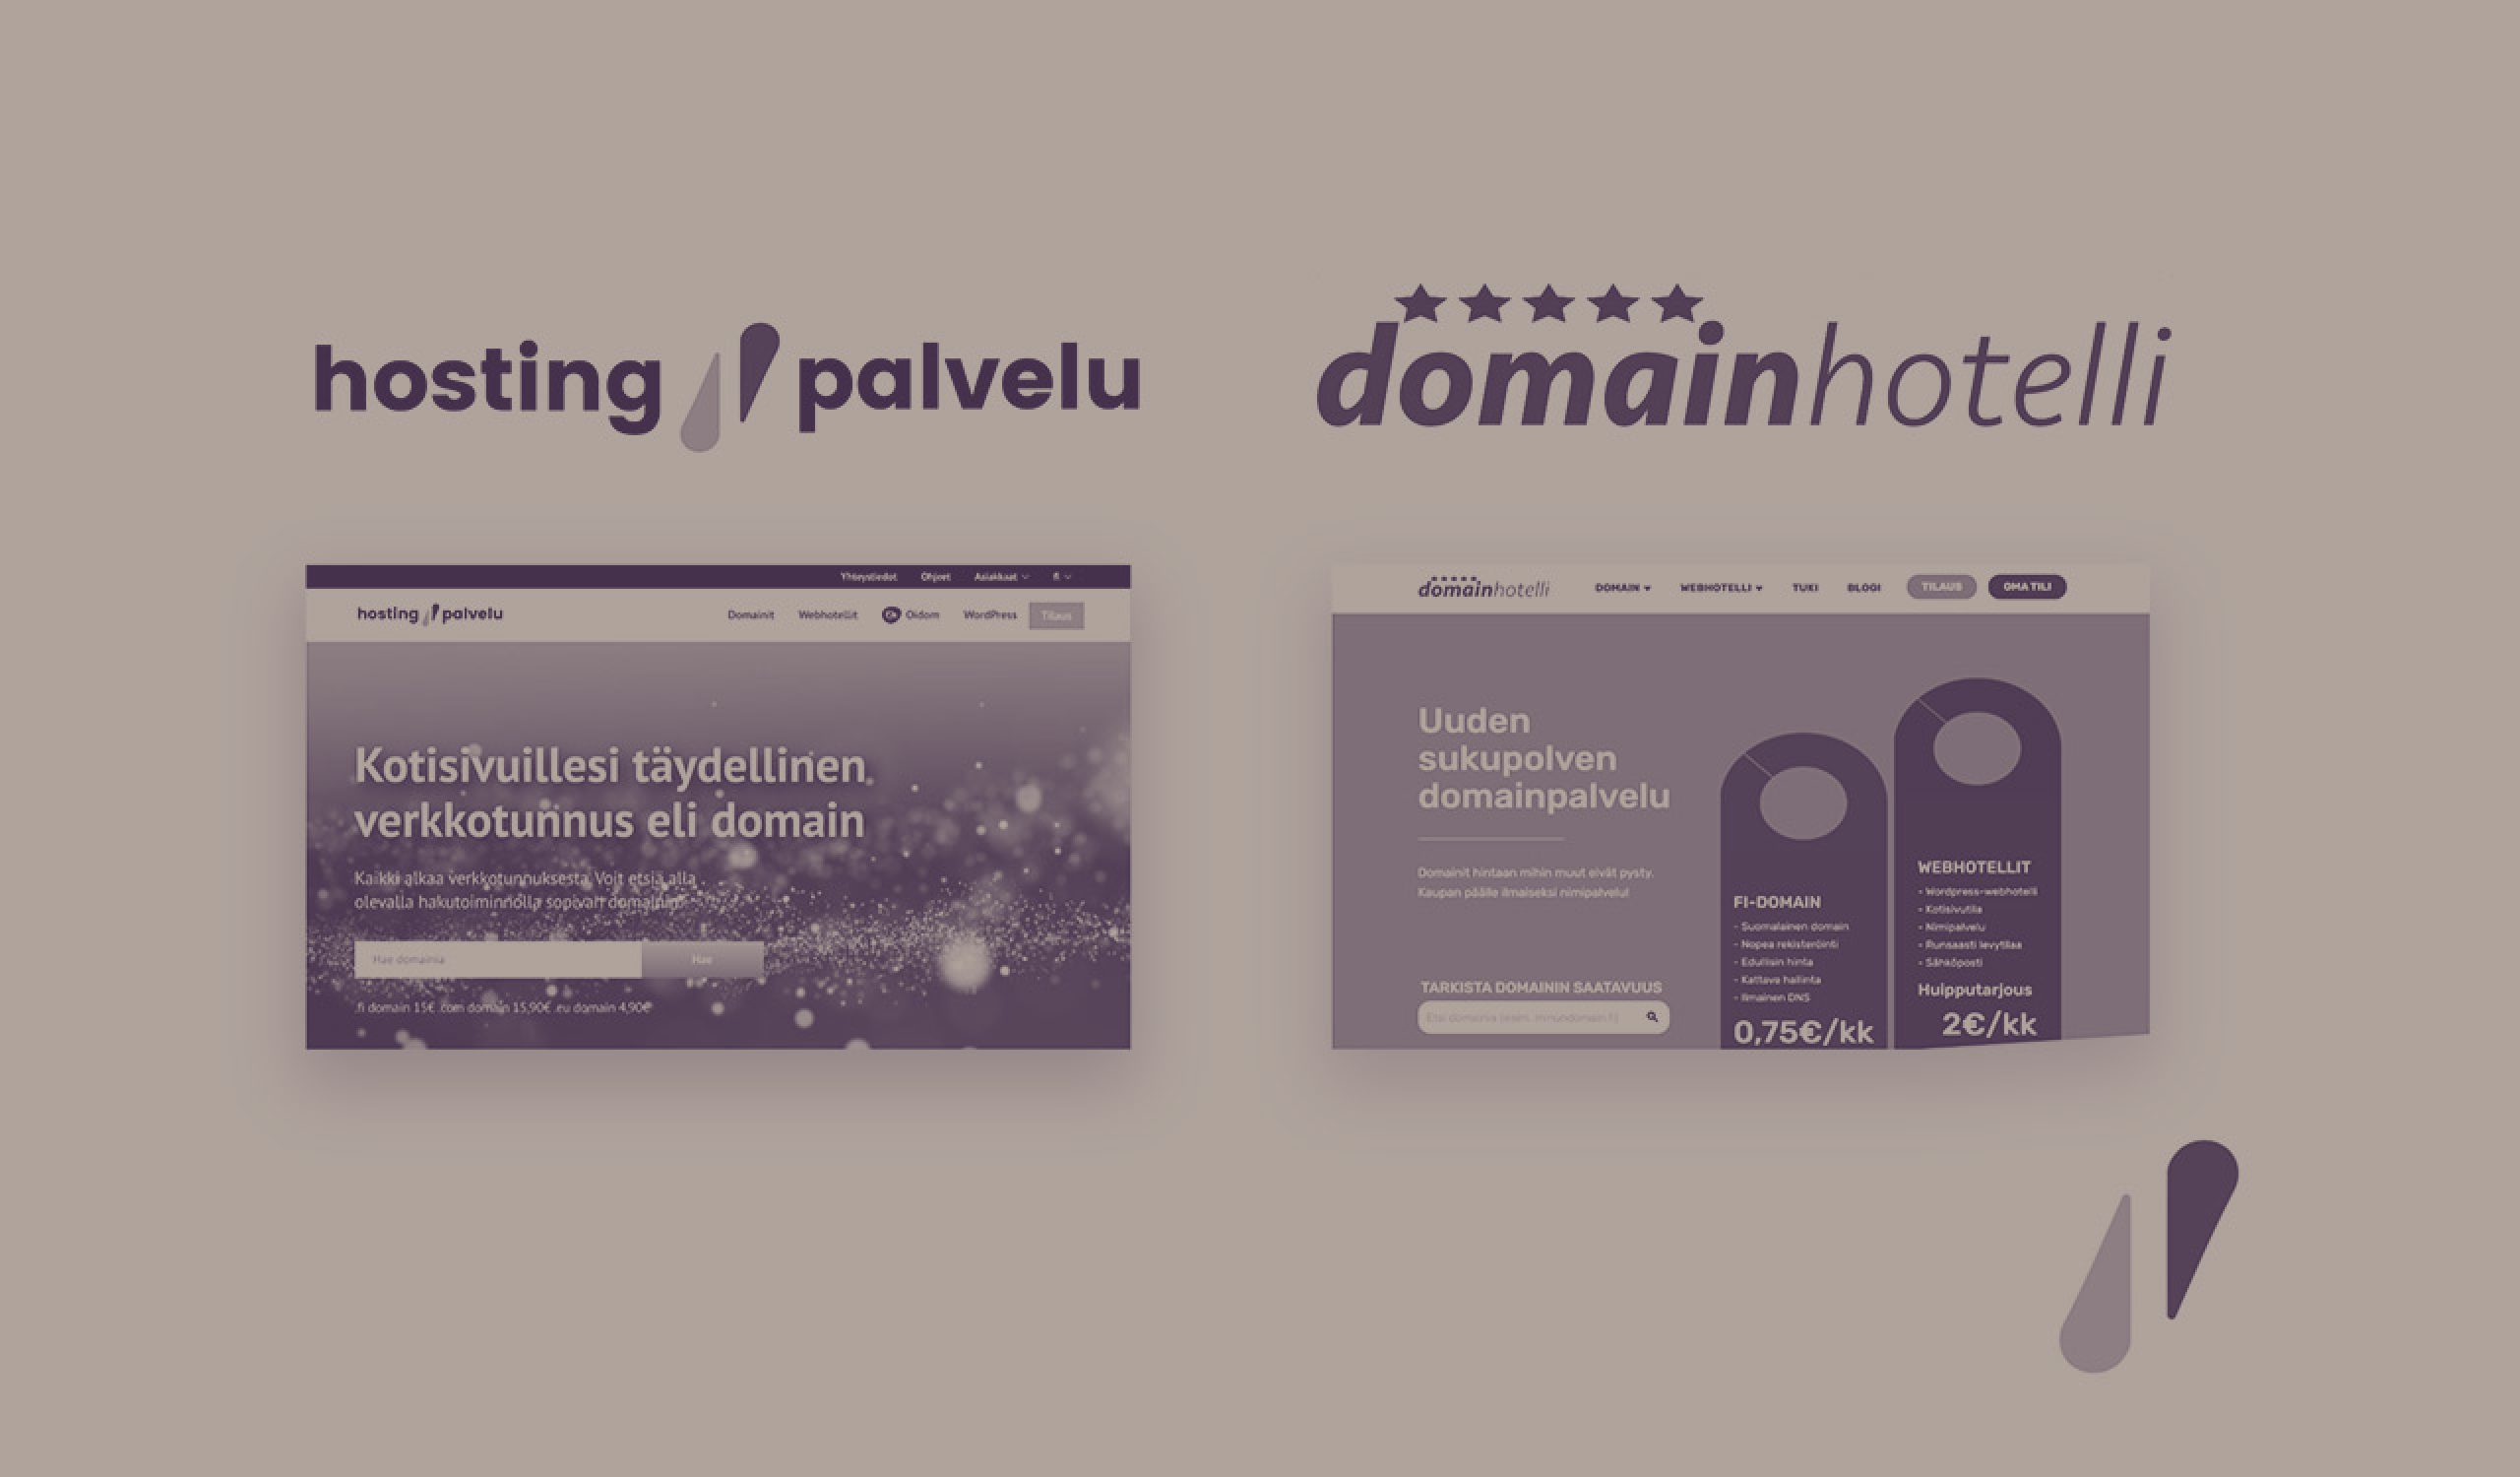 Loopia Group acquires fast growing Suomen Hostingpalvelu Oy and Domainhotelli Oy